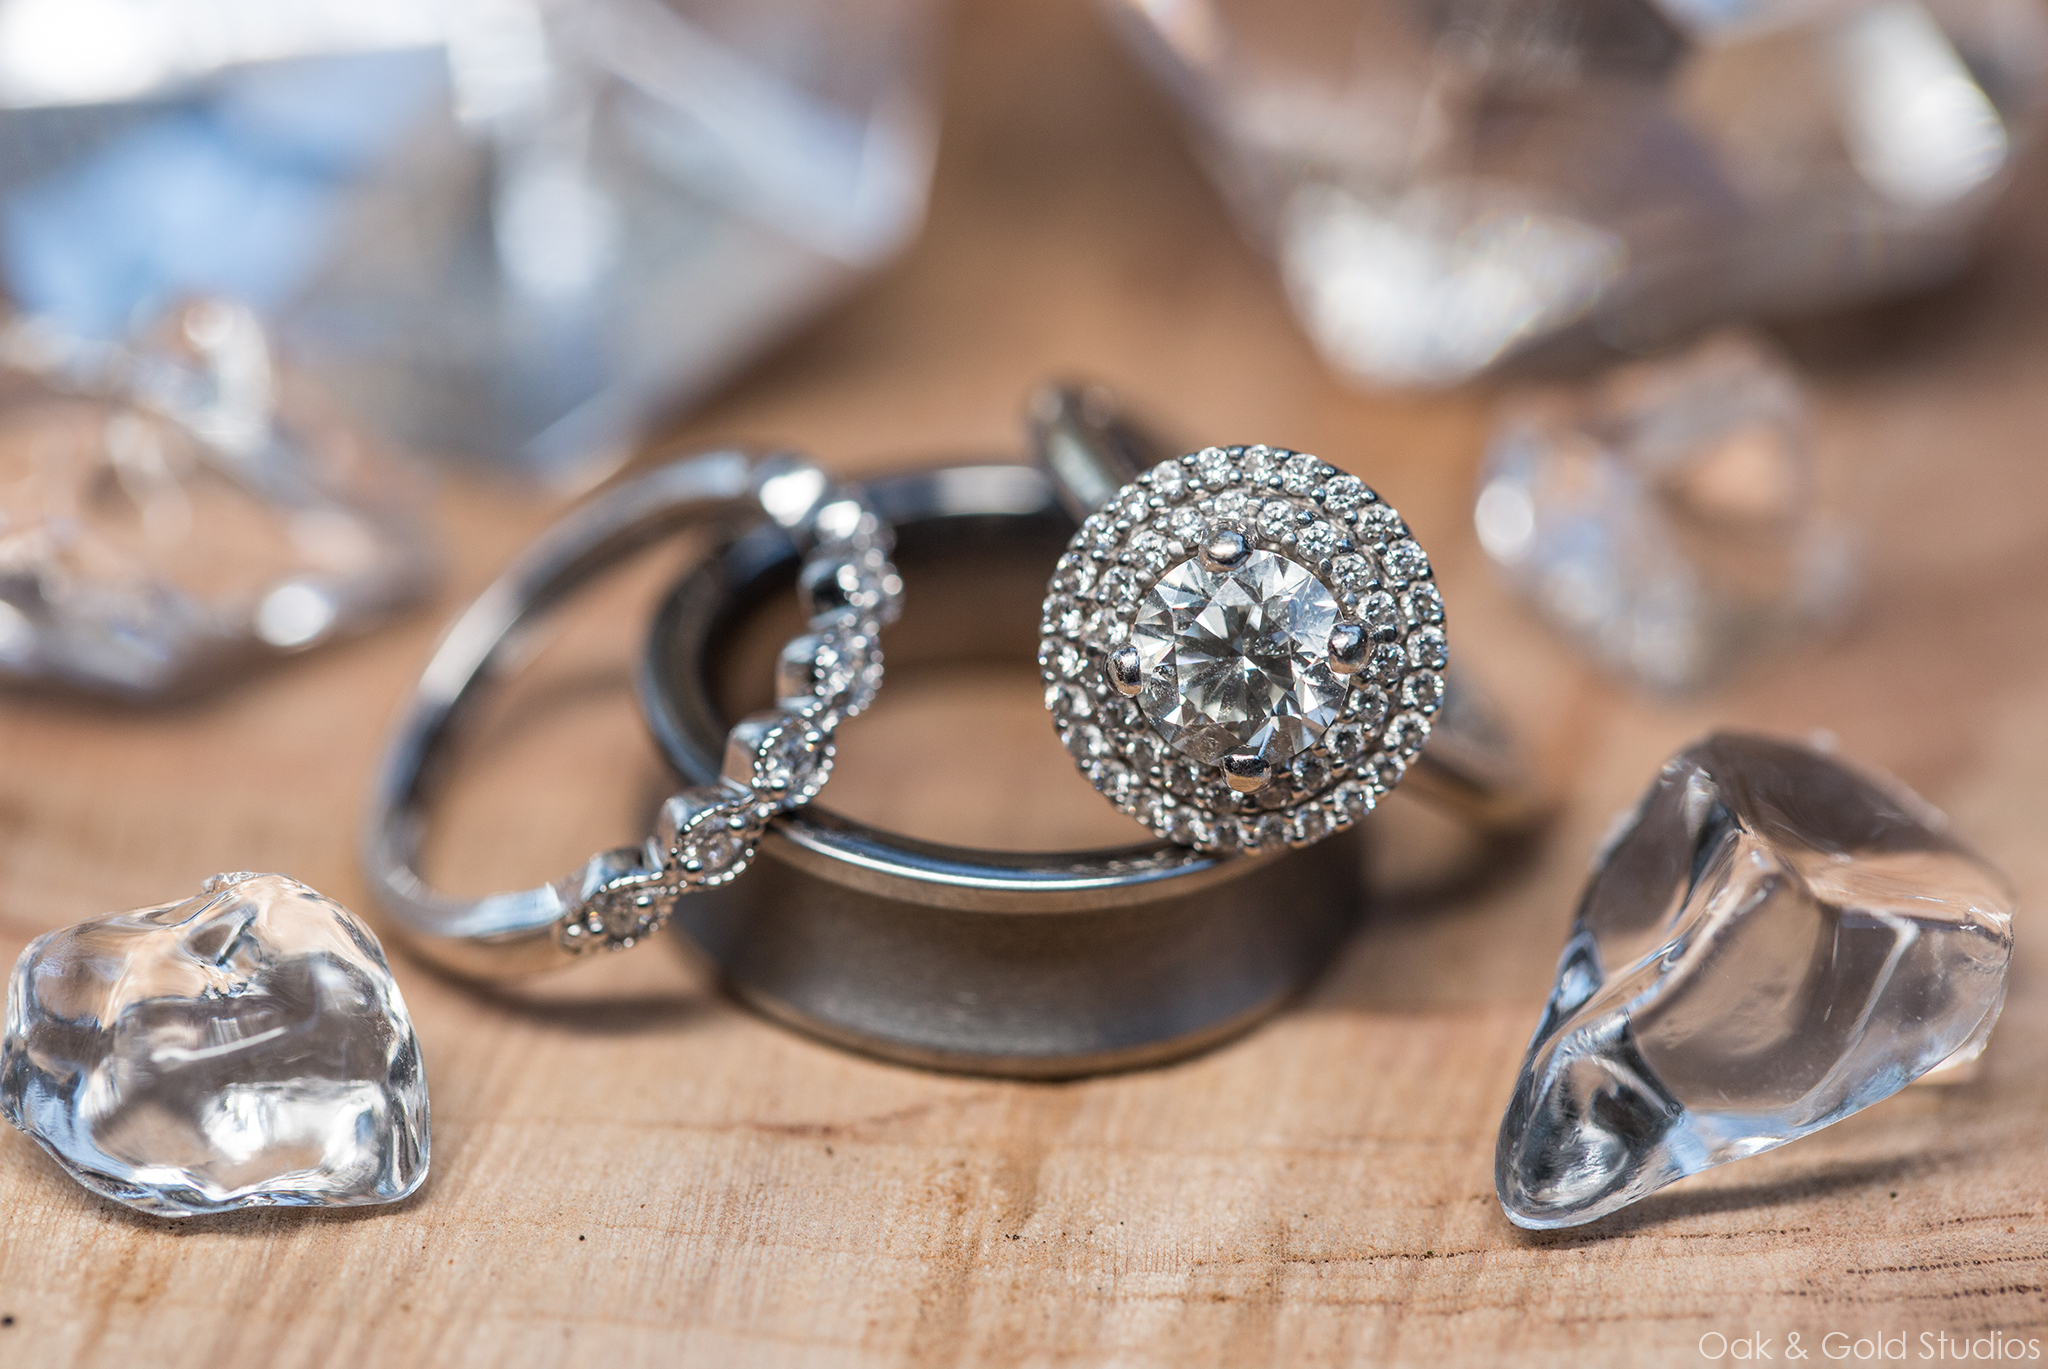 lake-lanier-wedding-rings.jpg